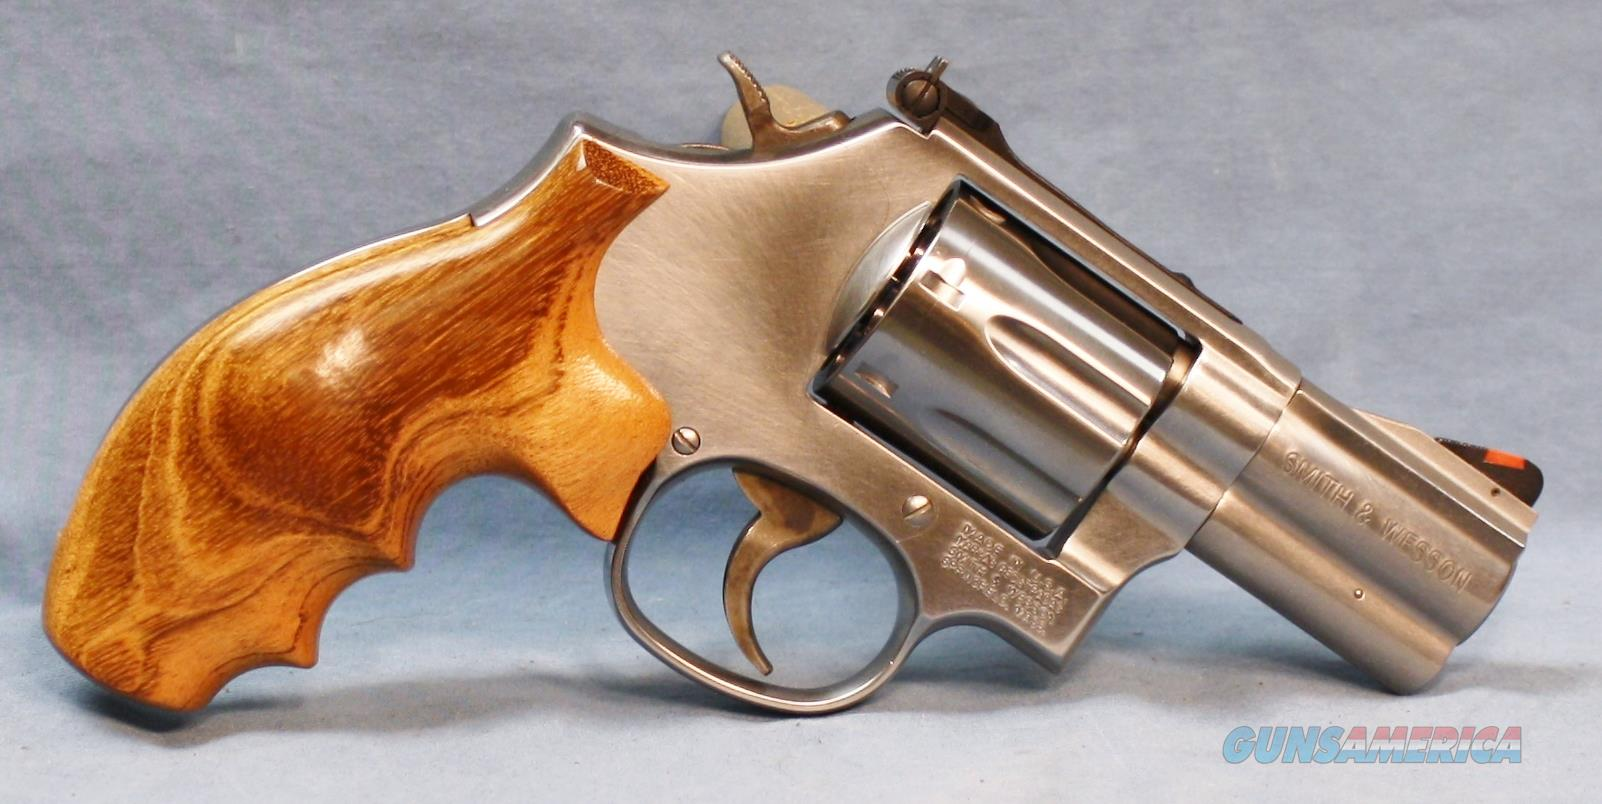 Smith & Wesson 686 Plus Distinguished Combat Magnum 7-Shot Double Action with Wood Grips Free Shipping and No Credit Card Fees! Revolver 357 Magnum  Guns > Pistols > Smith & Wesson Revolvers > Full Frame Revolver